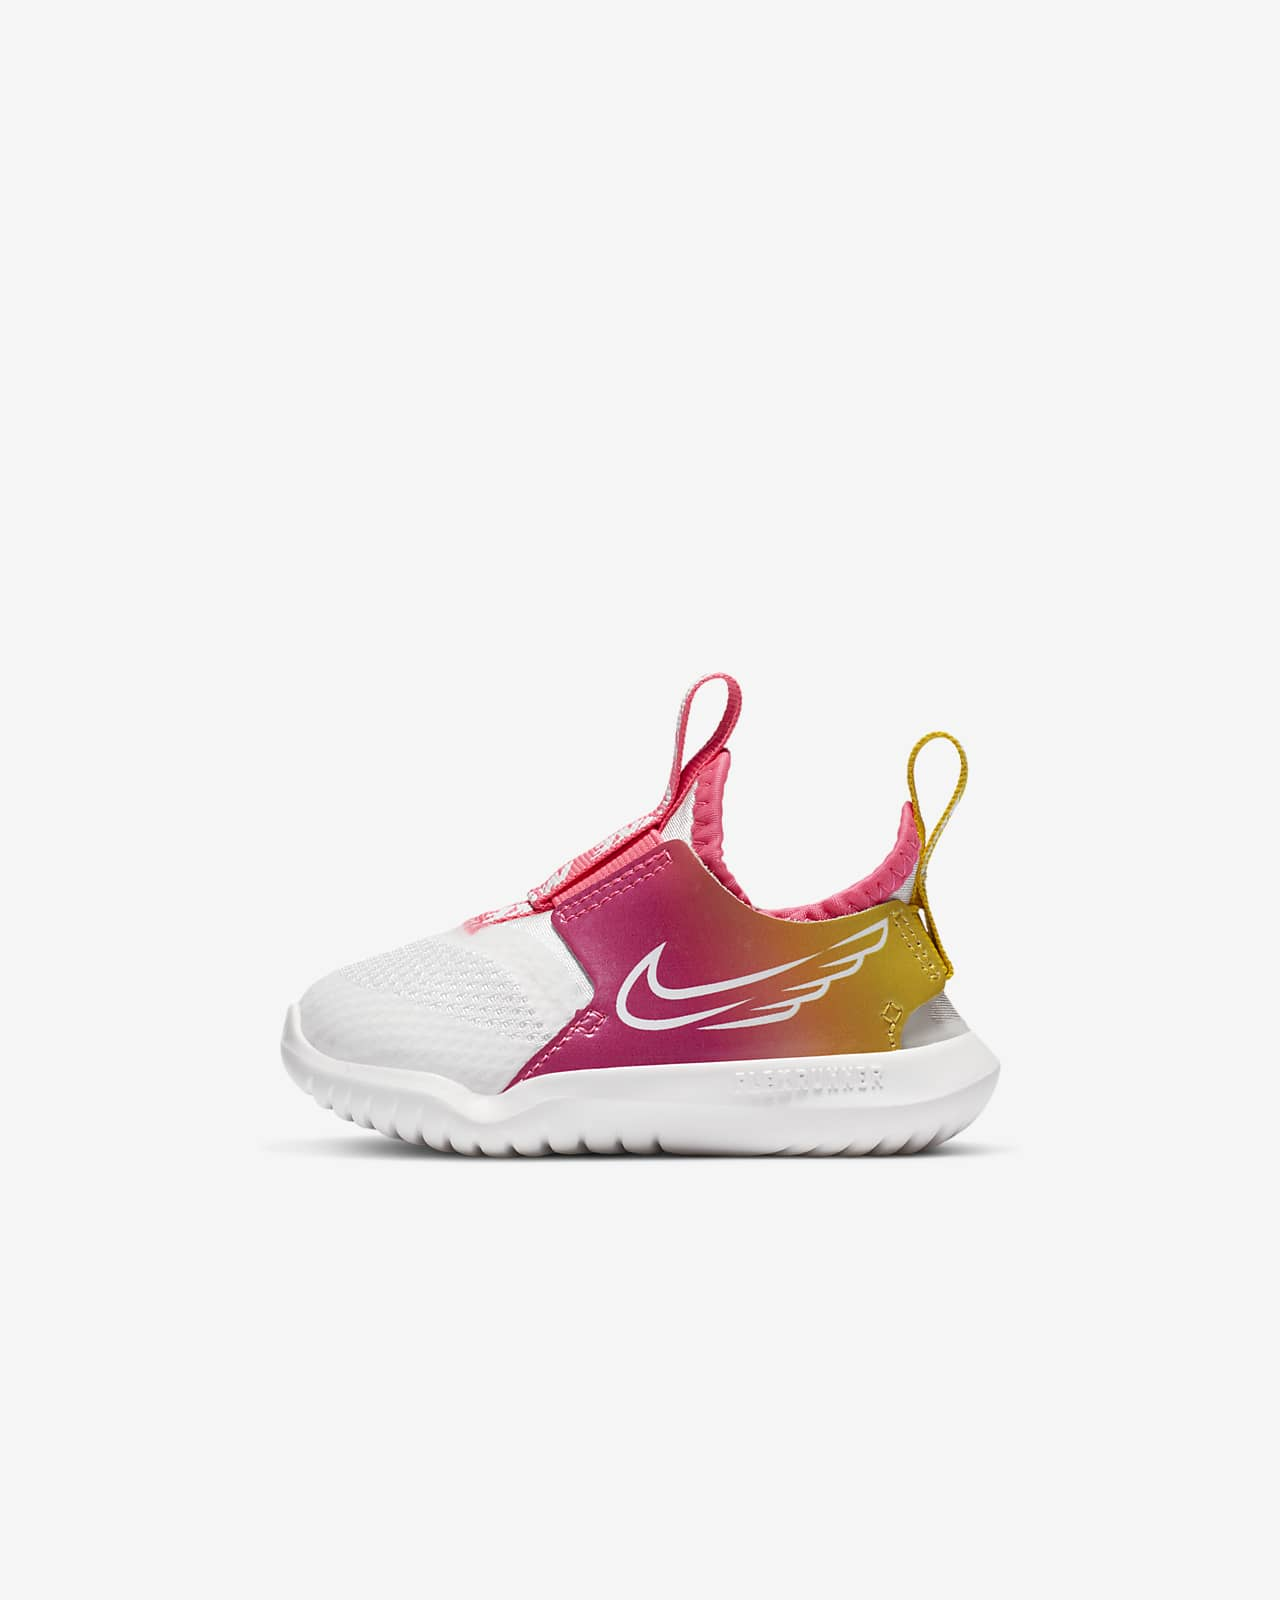 Nike Flex Runner Sun Baby and Toddler Shoe